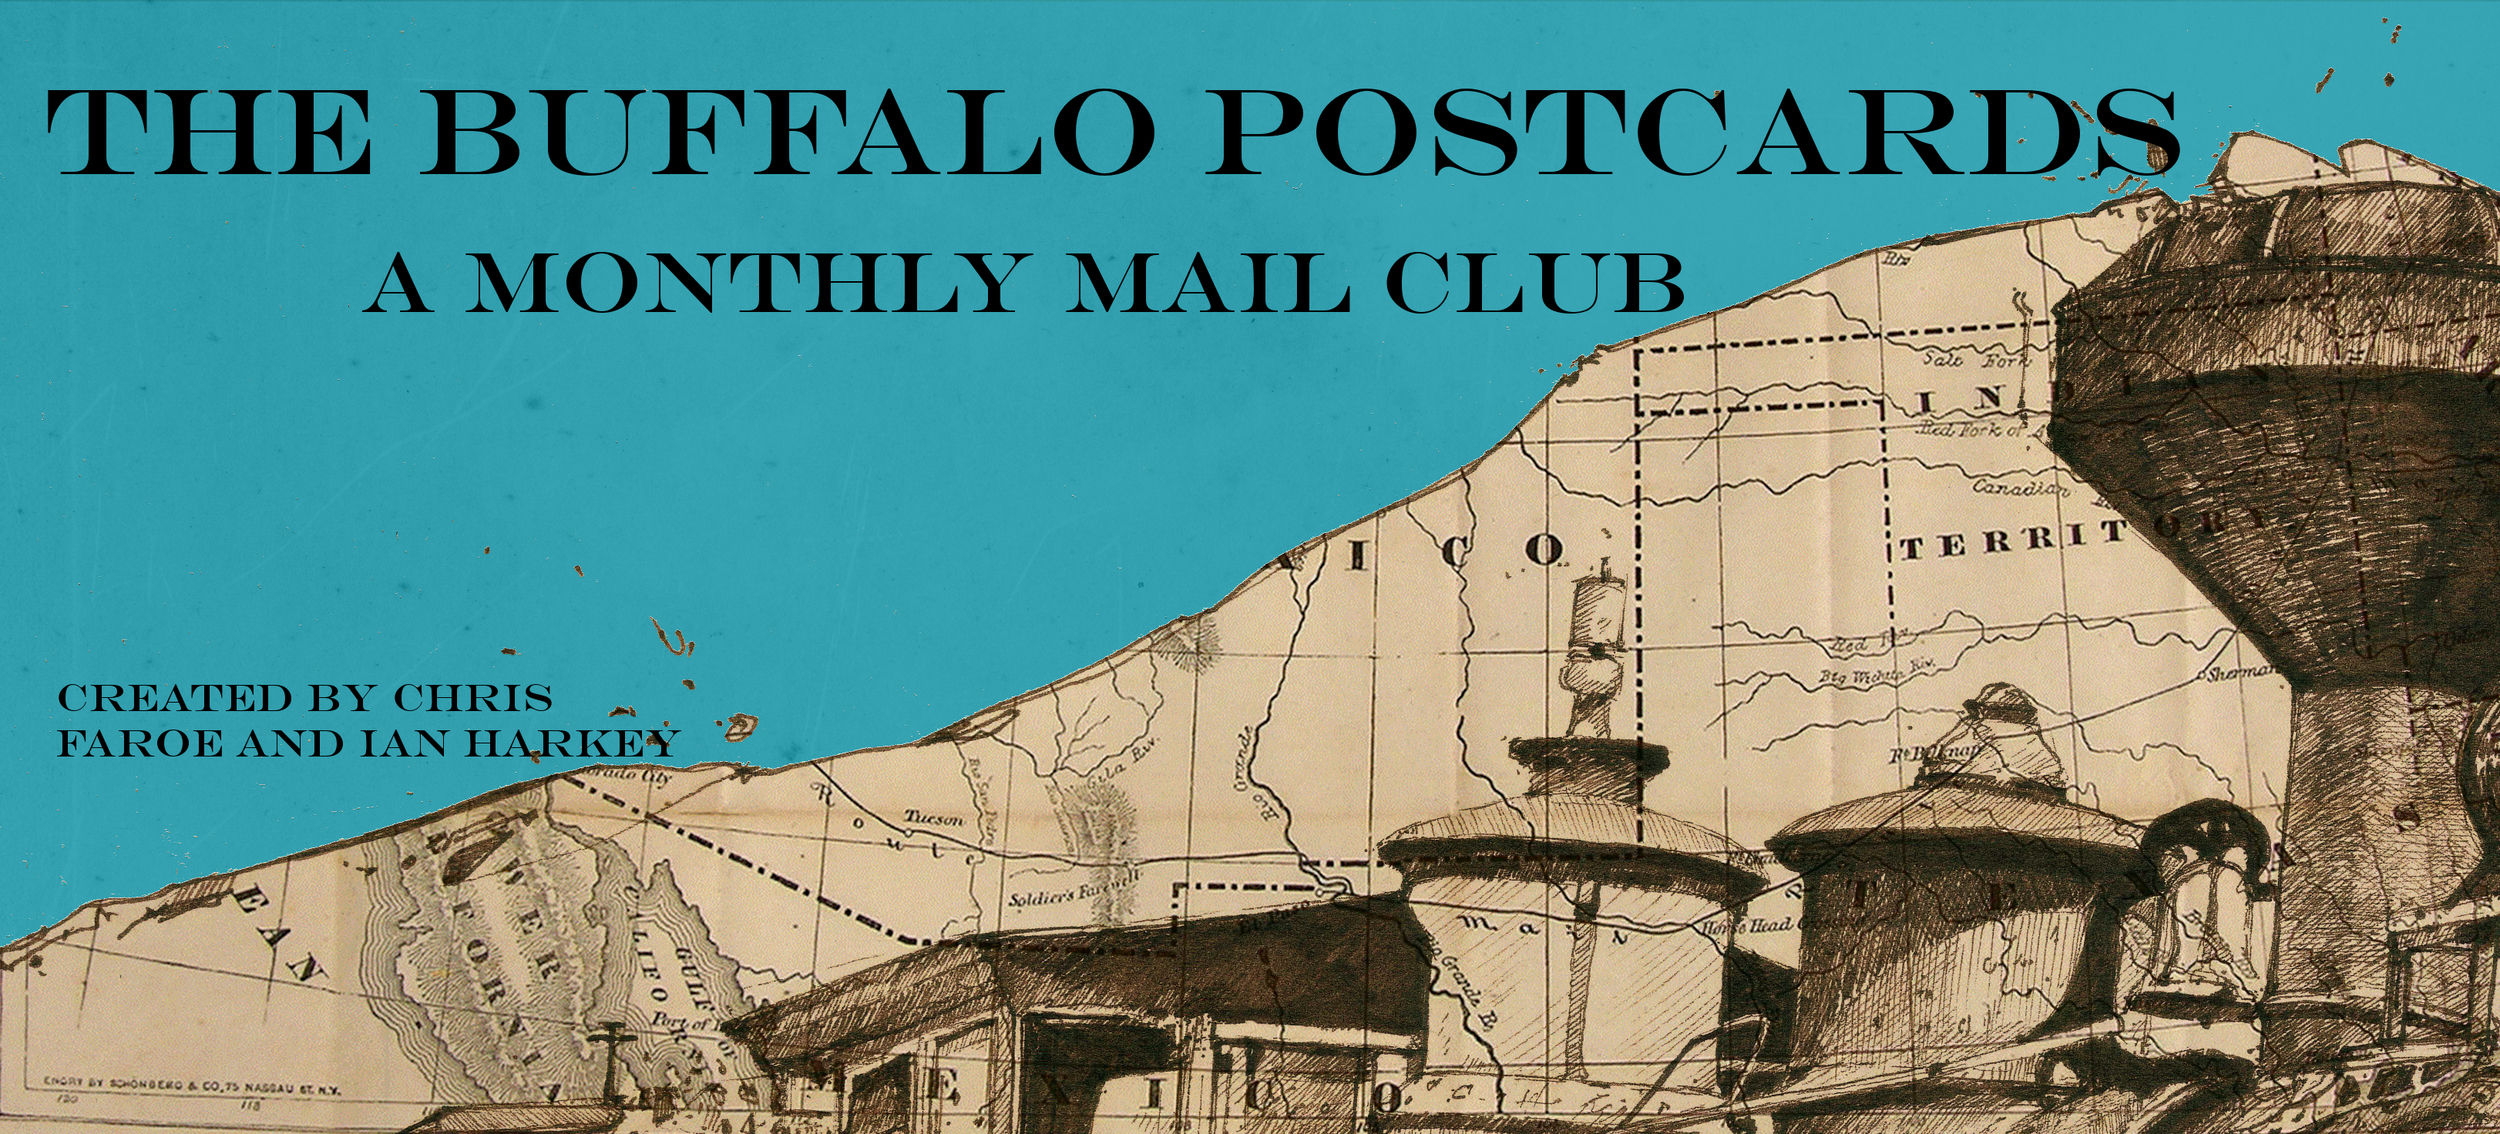 buffalo postcards ad.jpg